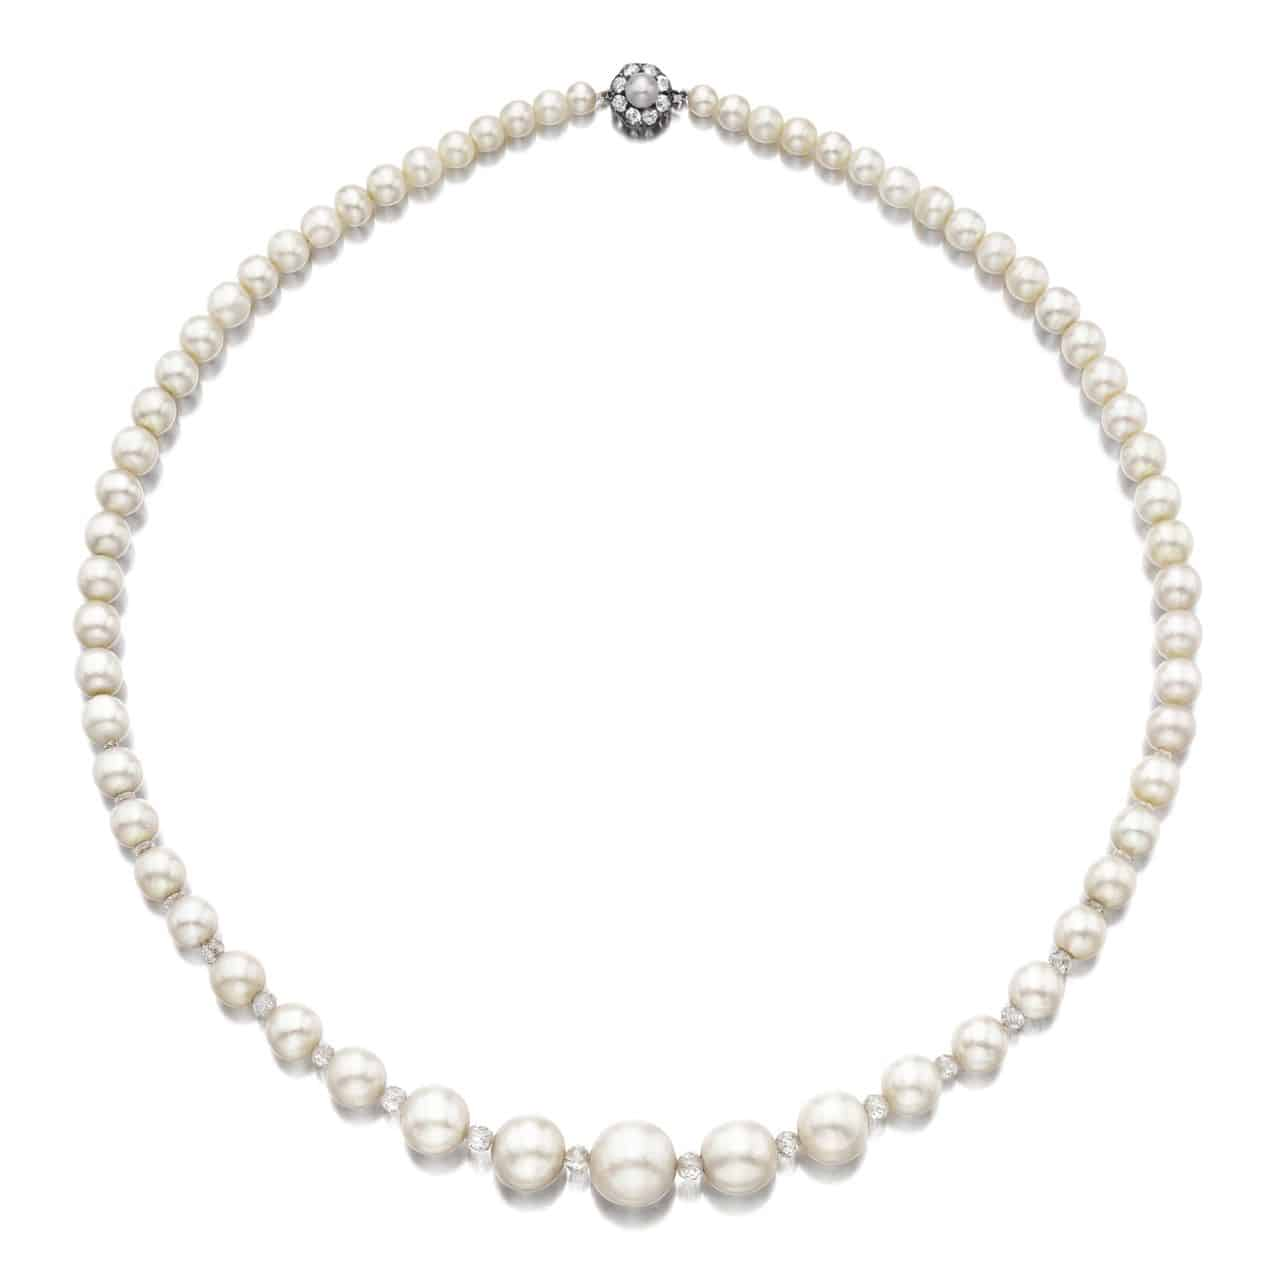 Lot 1796 - Important Natural Pearl and Diamond Necklace